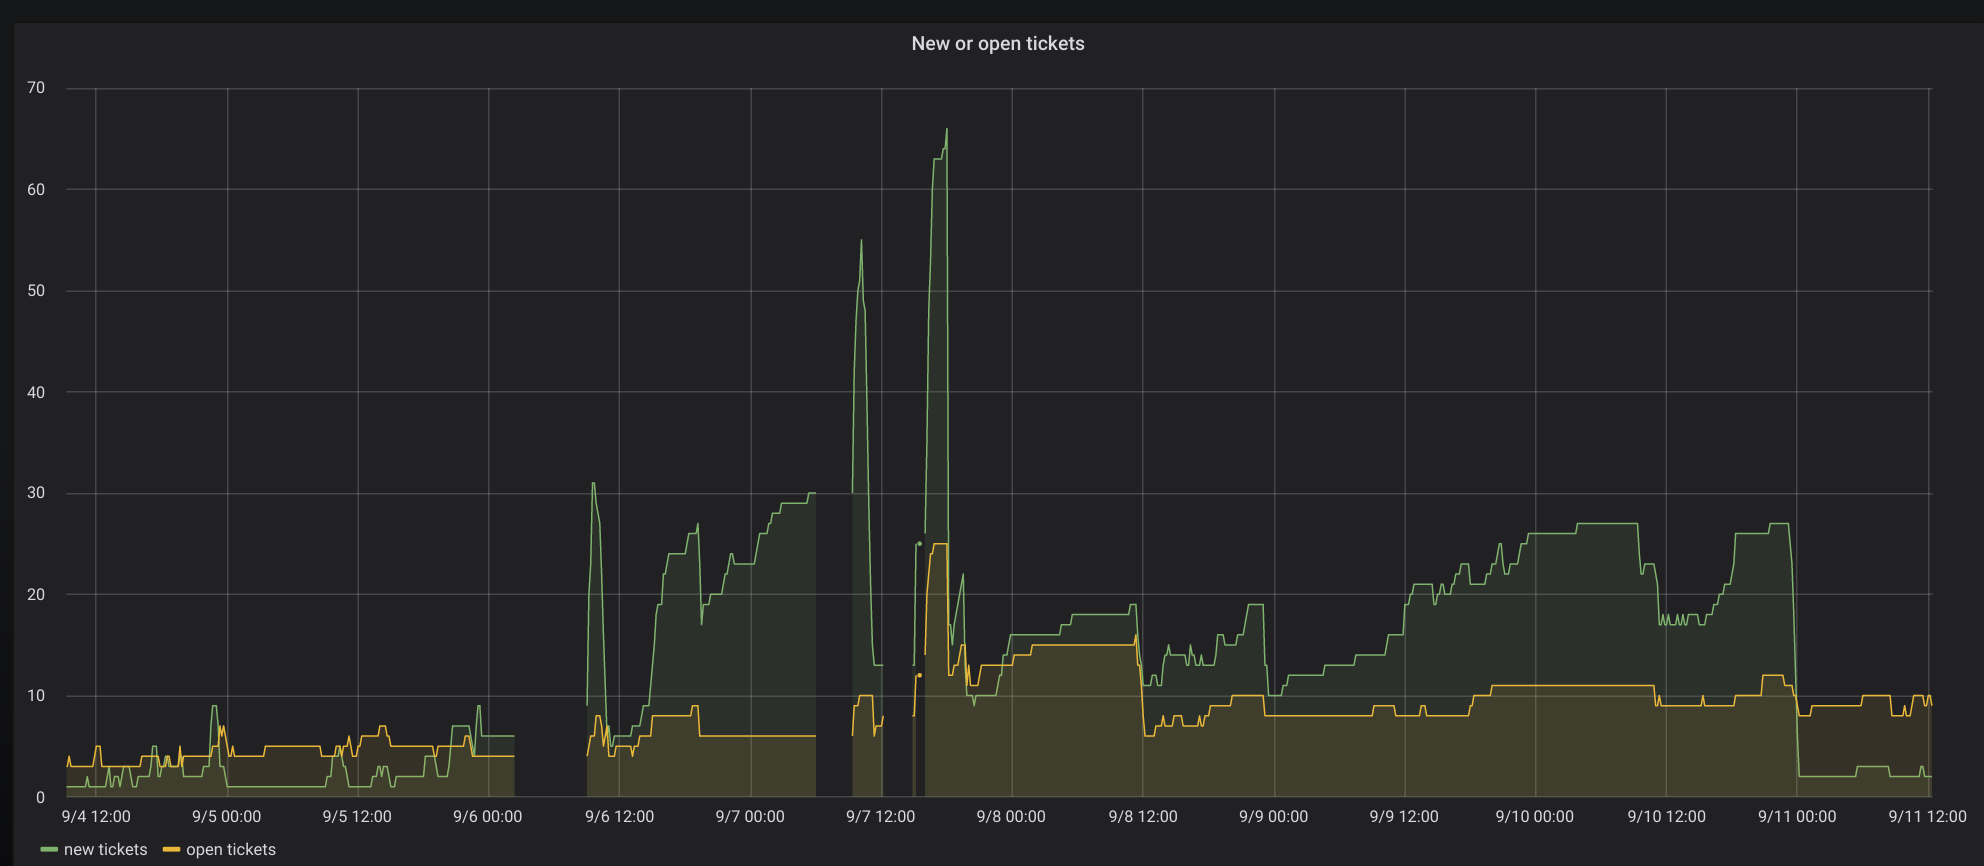 grafana visualisation of new or open tickets over time